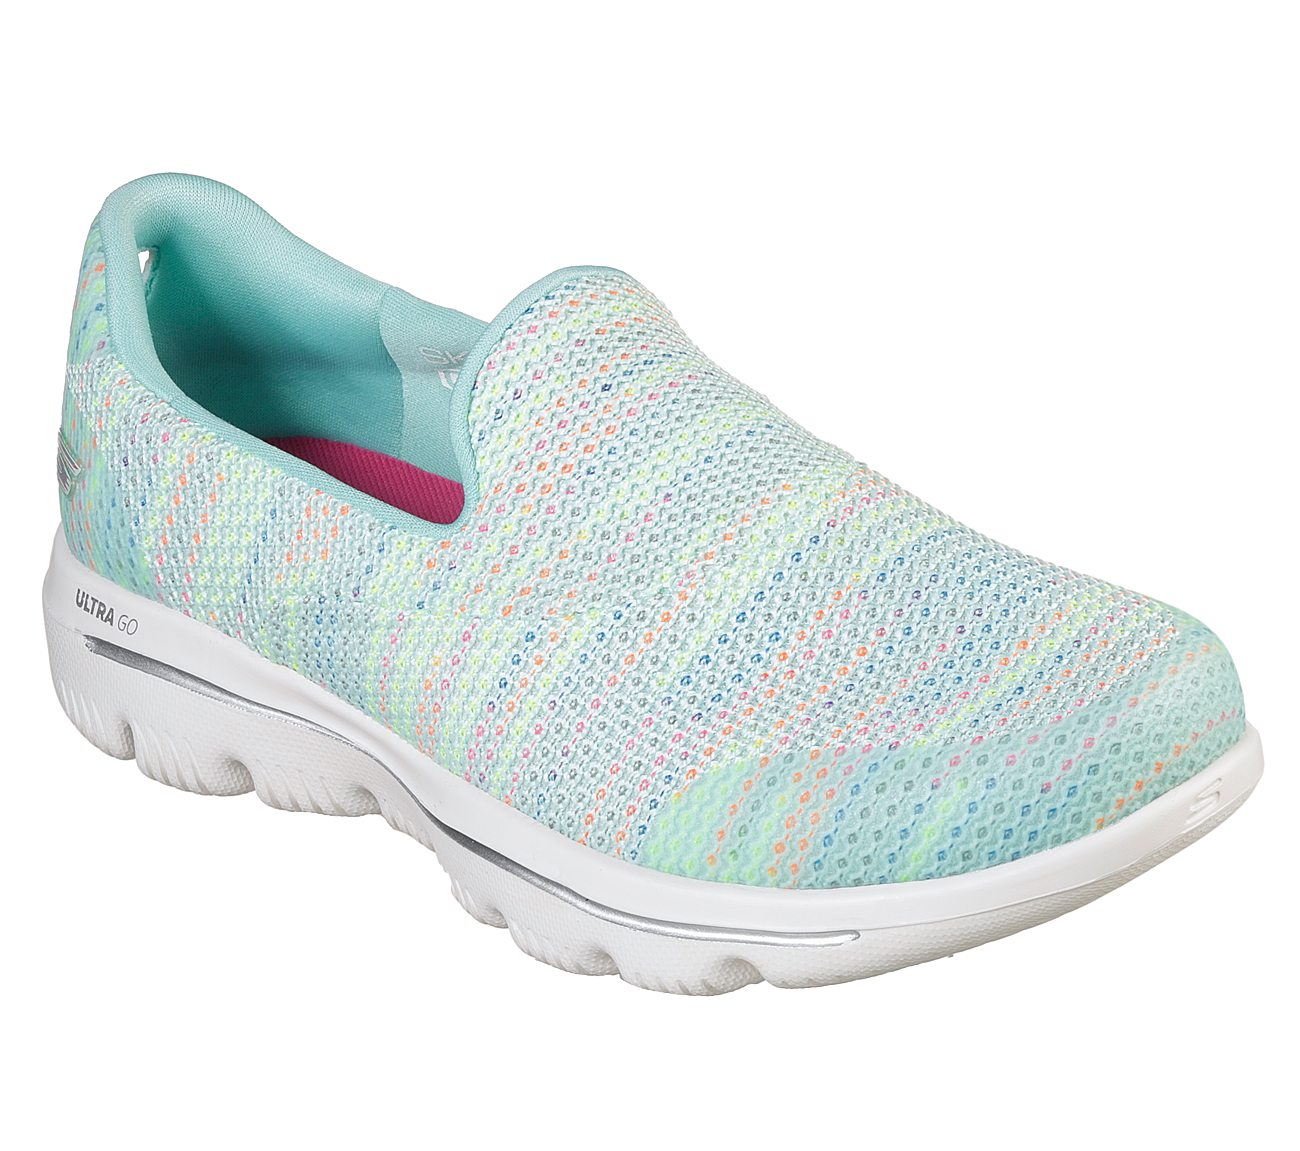 Skechers GOwalk Evolution Ultra - Gladden